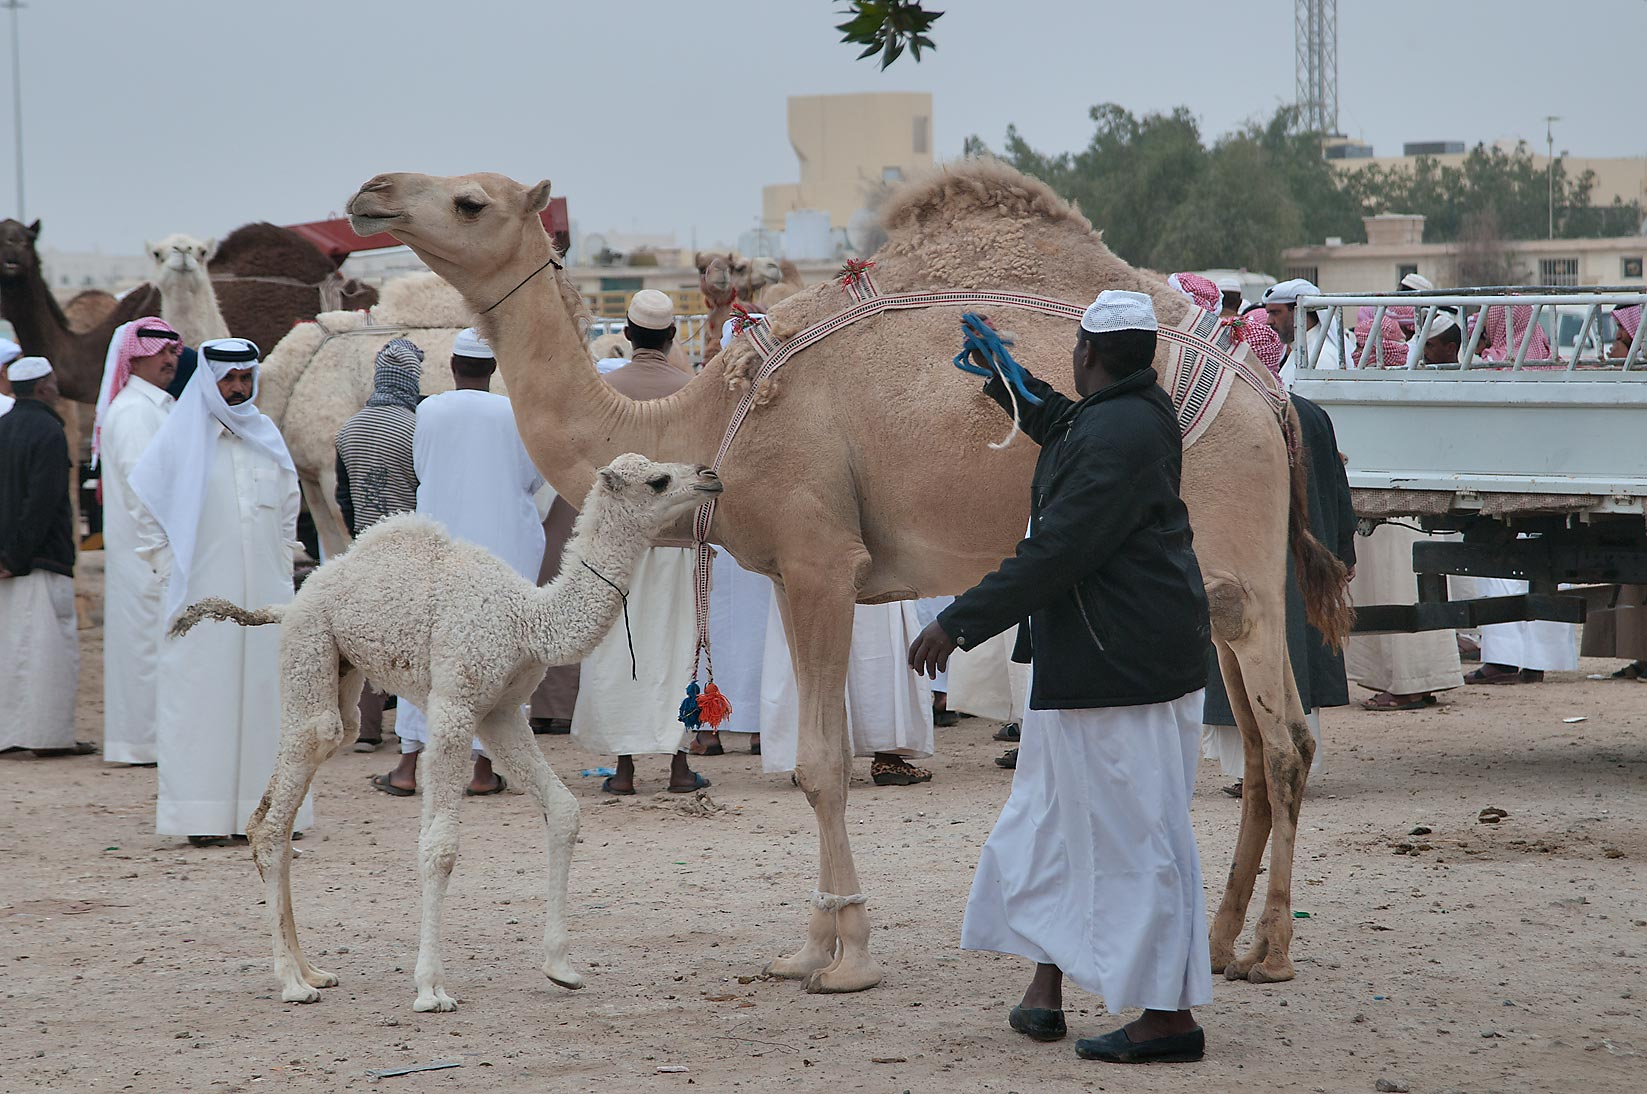 Camel with a white calf in Camel Market (Souq), racing section. Doha, Qatar